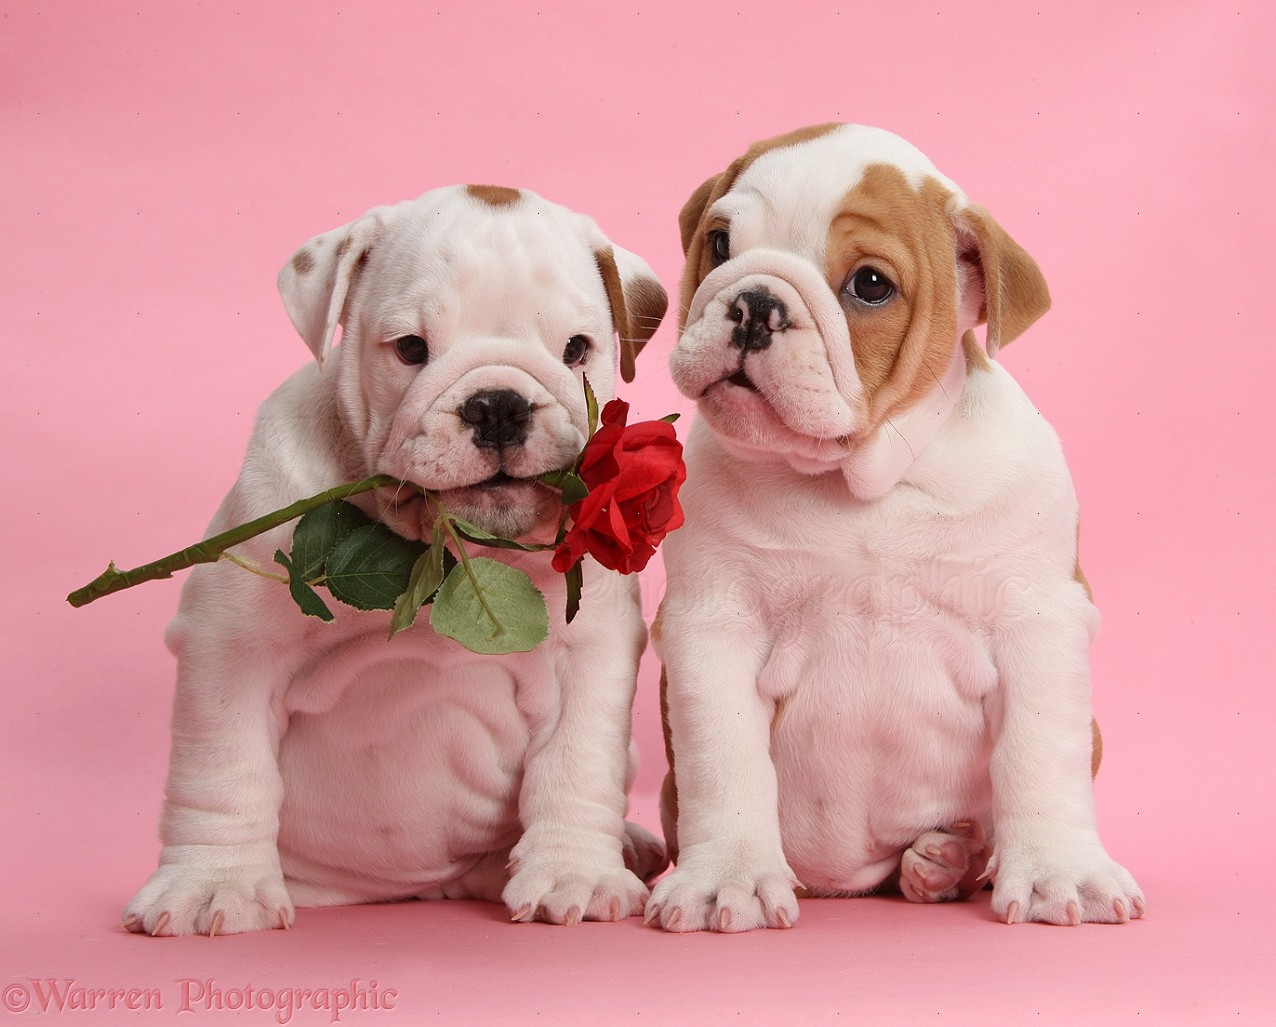 Bulldog puppies with red rose, on pink background photo ... Bulldog Puppies Wallpaper